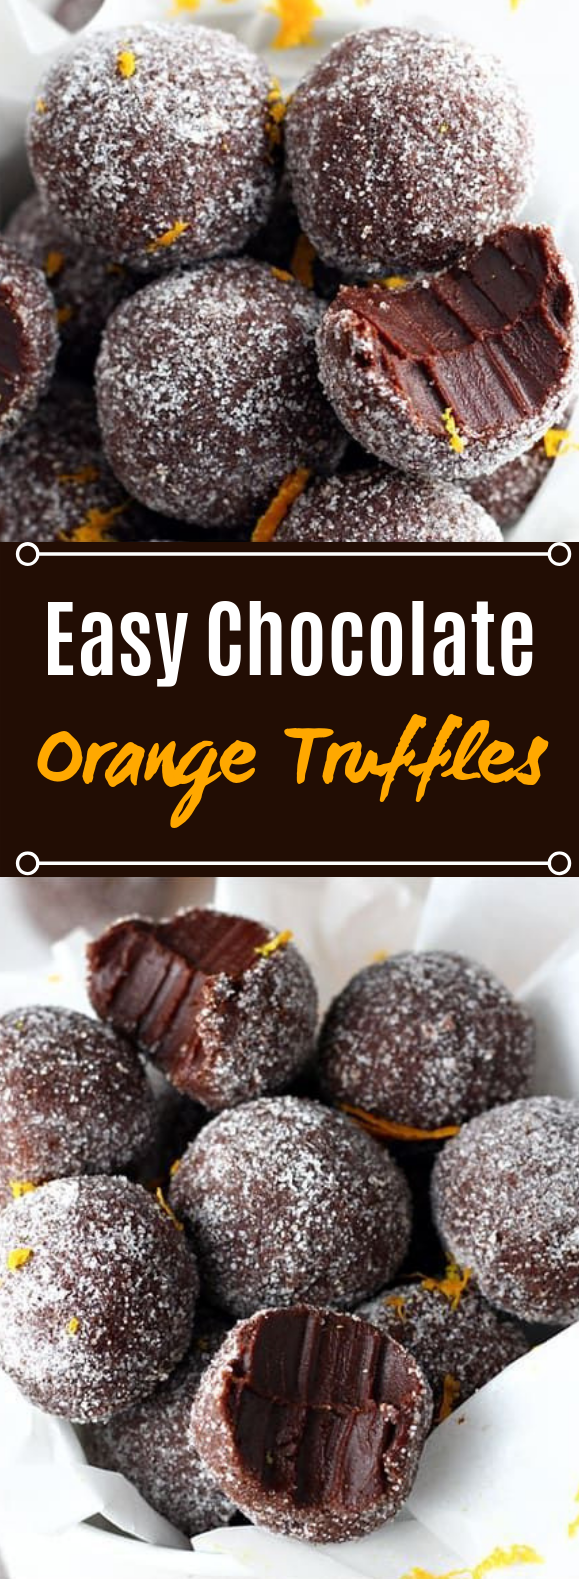 Easy Chocolate Orange Truffles #chocolate #desserts